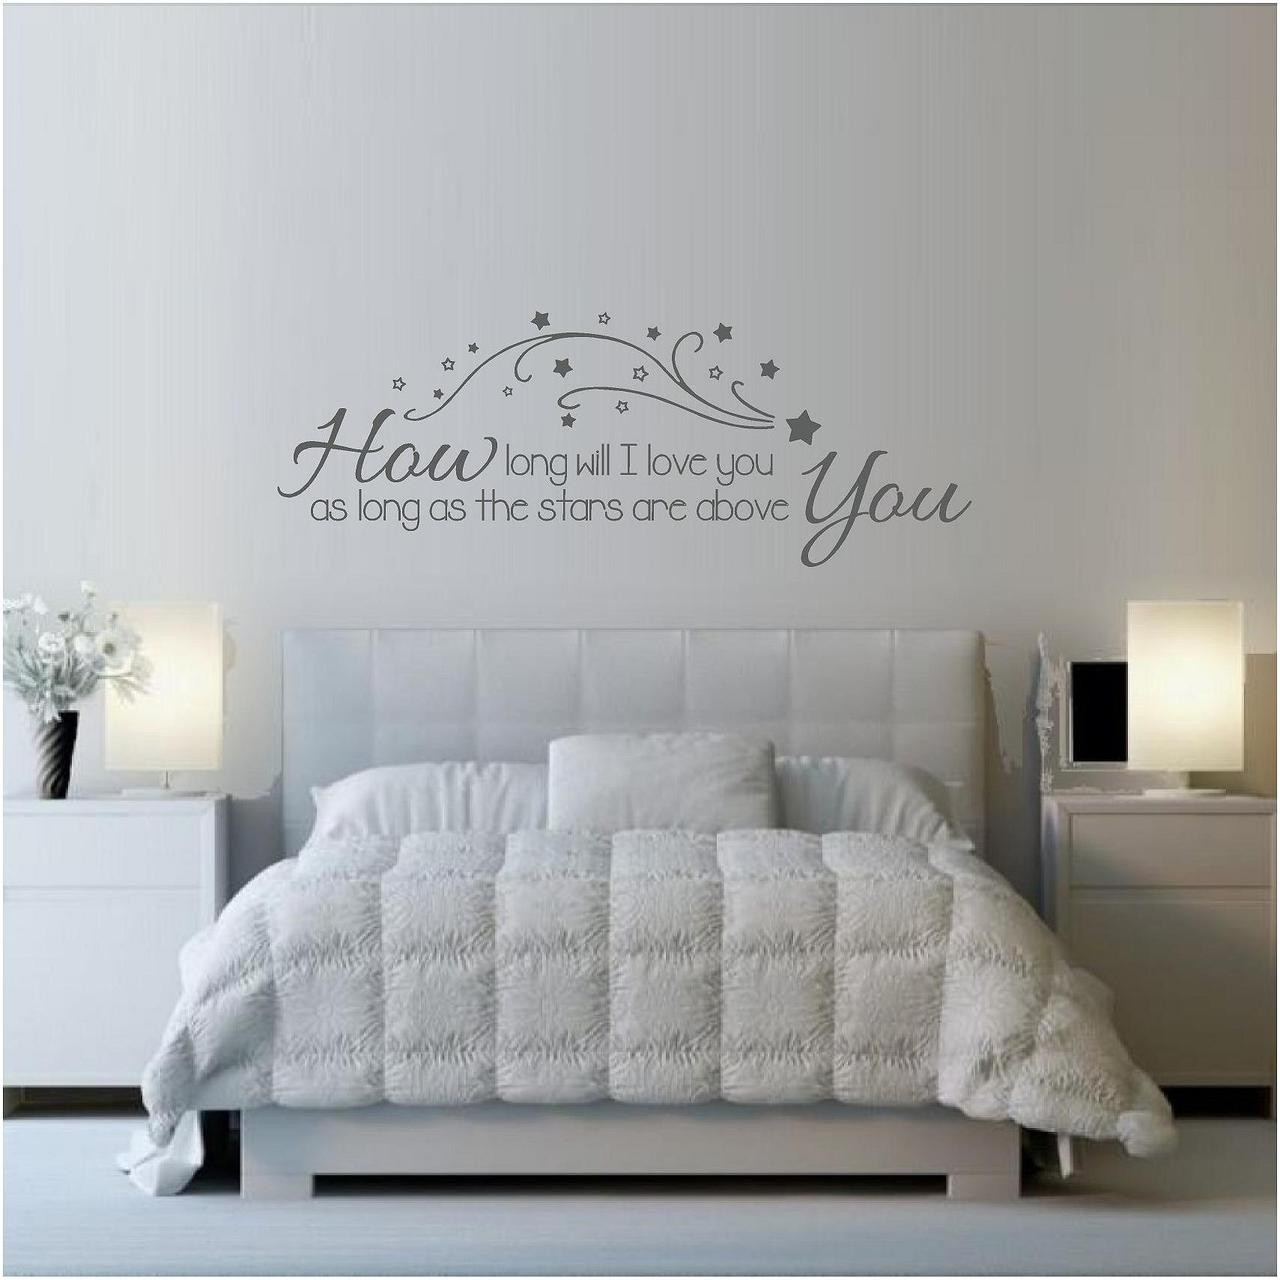 How Long Will I Love You? Song Lyrics Wall Art